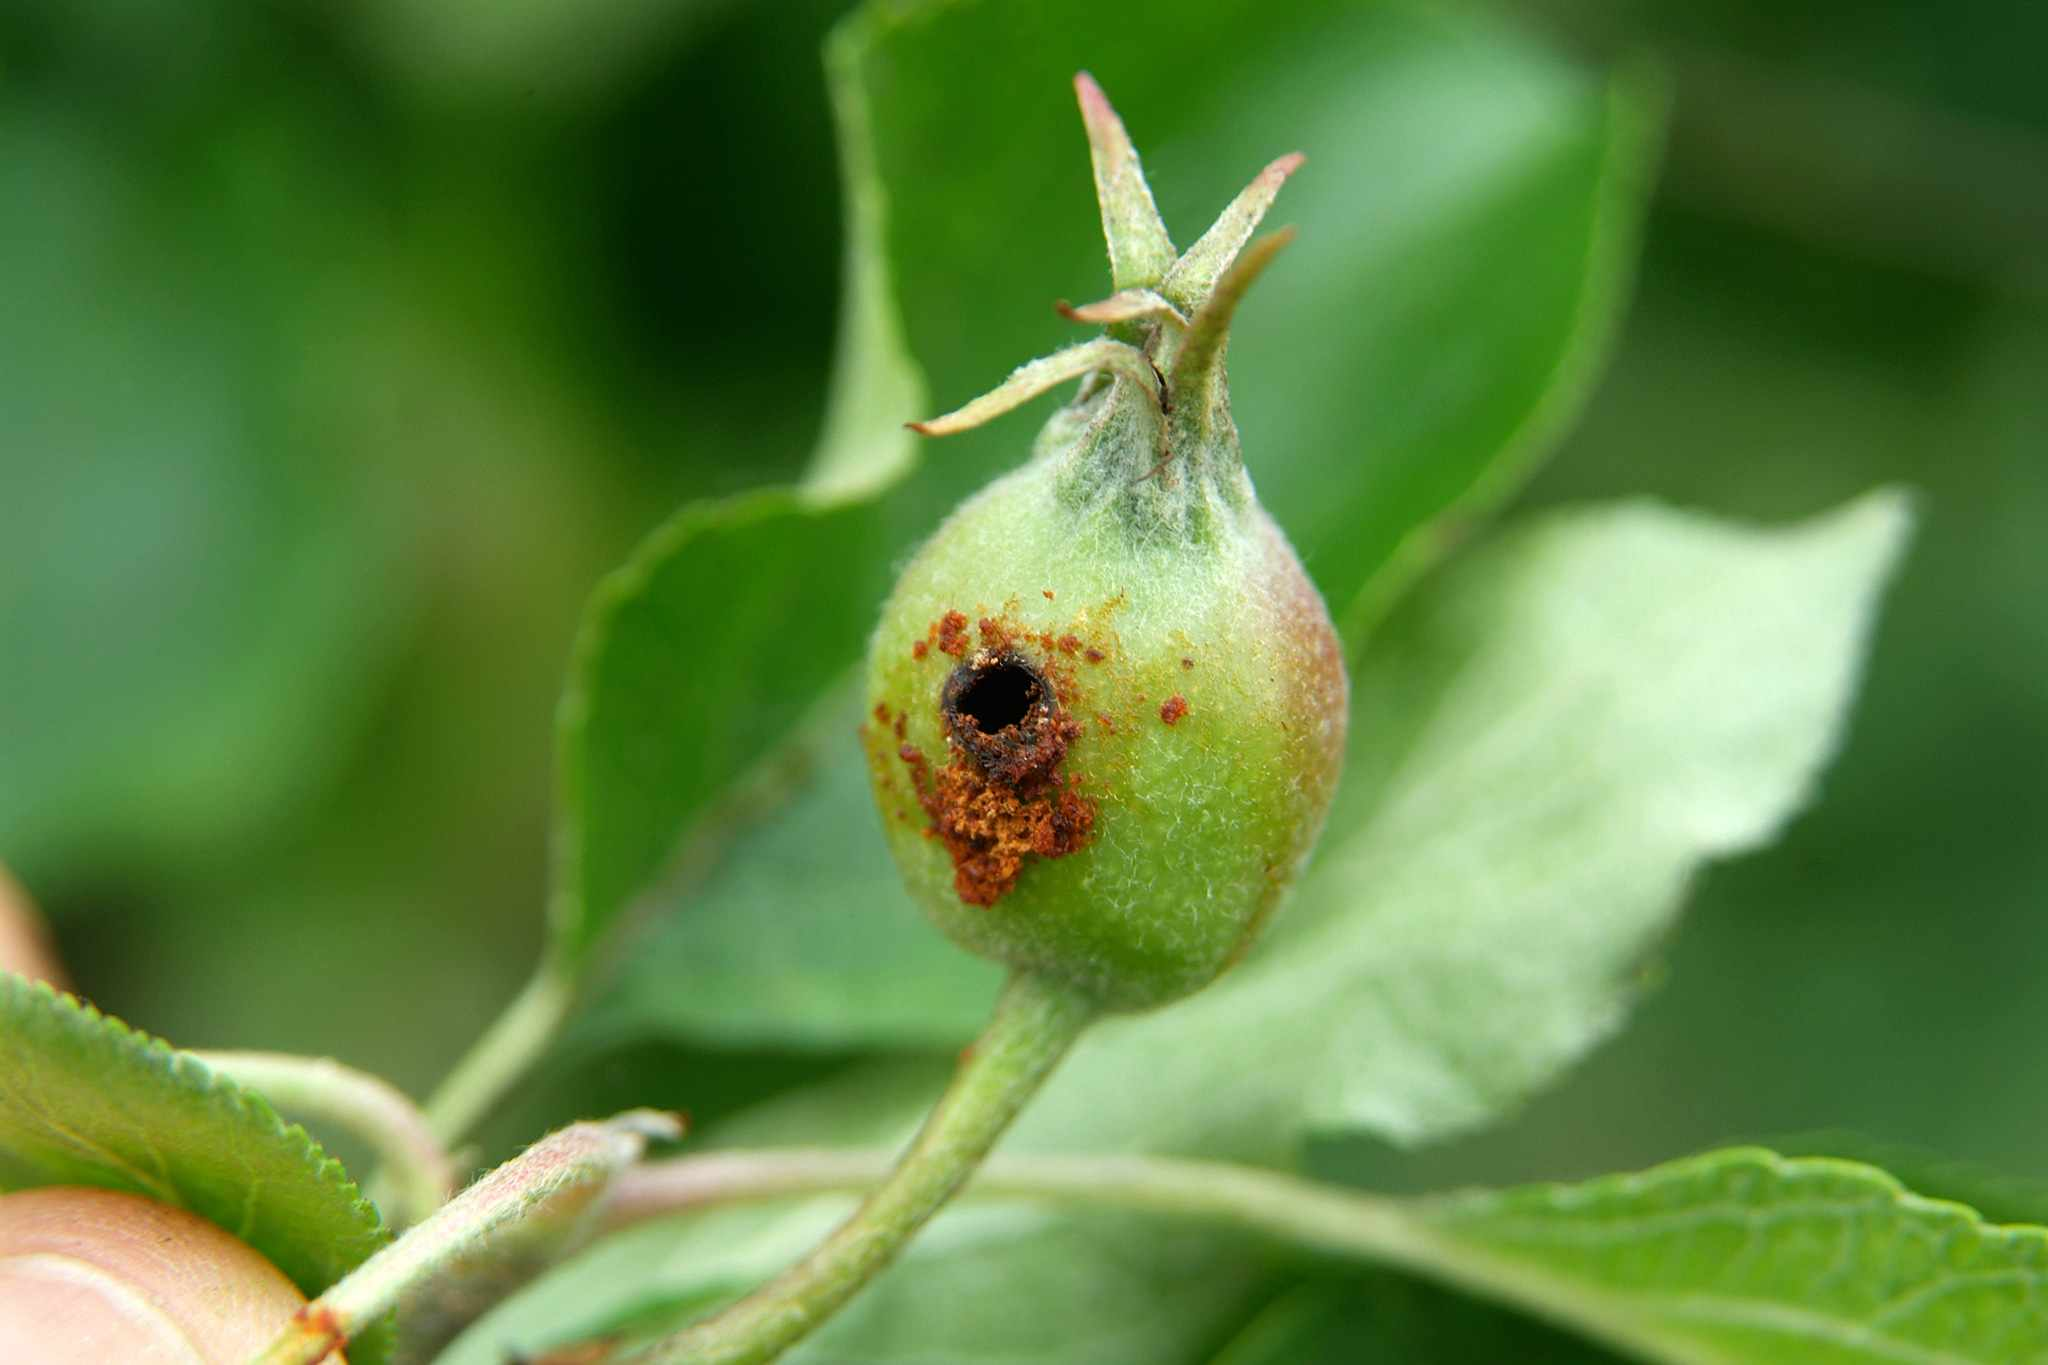 A developing fruit tunnelled through by a codling moth caterpillar